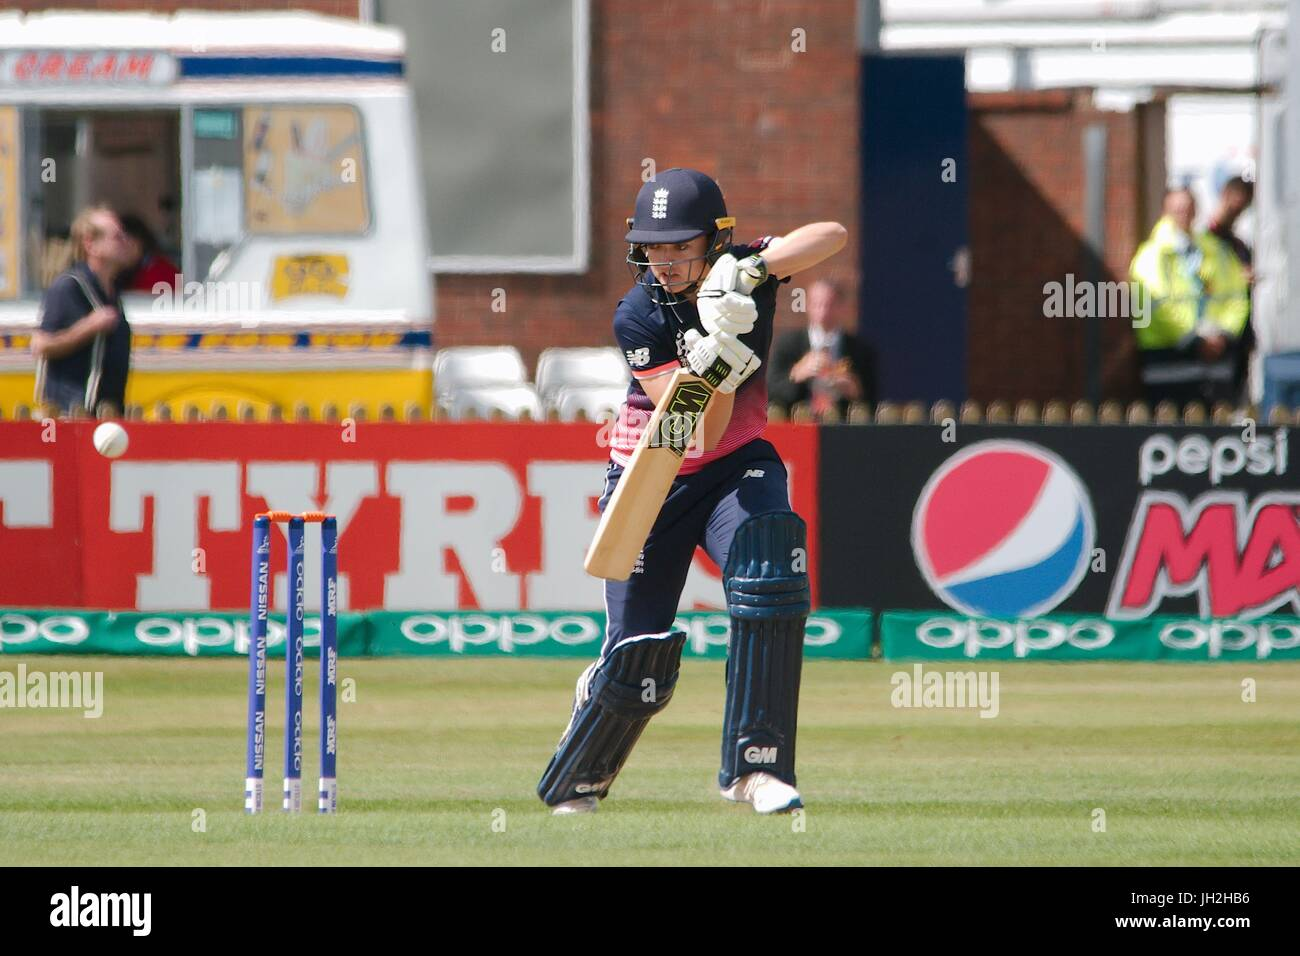 Taylor Kia Of Boardman >> Sarah Taylor Cricket Stock Photos & Sarah Taylor Cricket Stock Images - Alamy